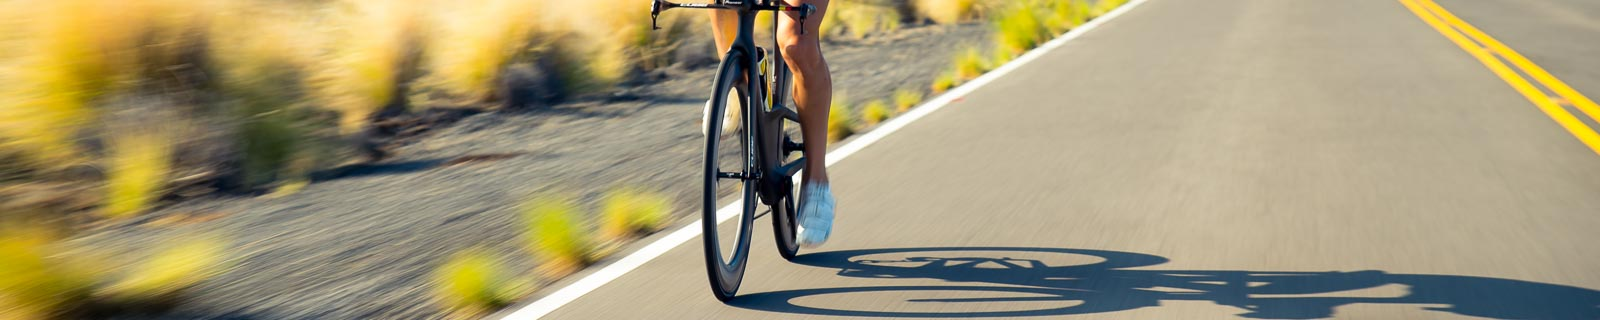 Vélos de triathlon